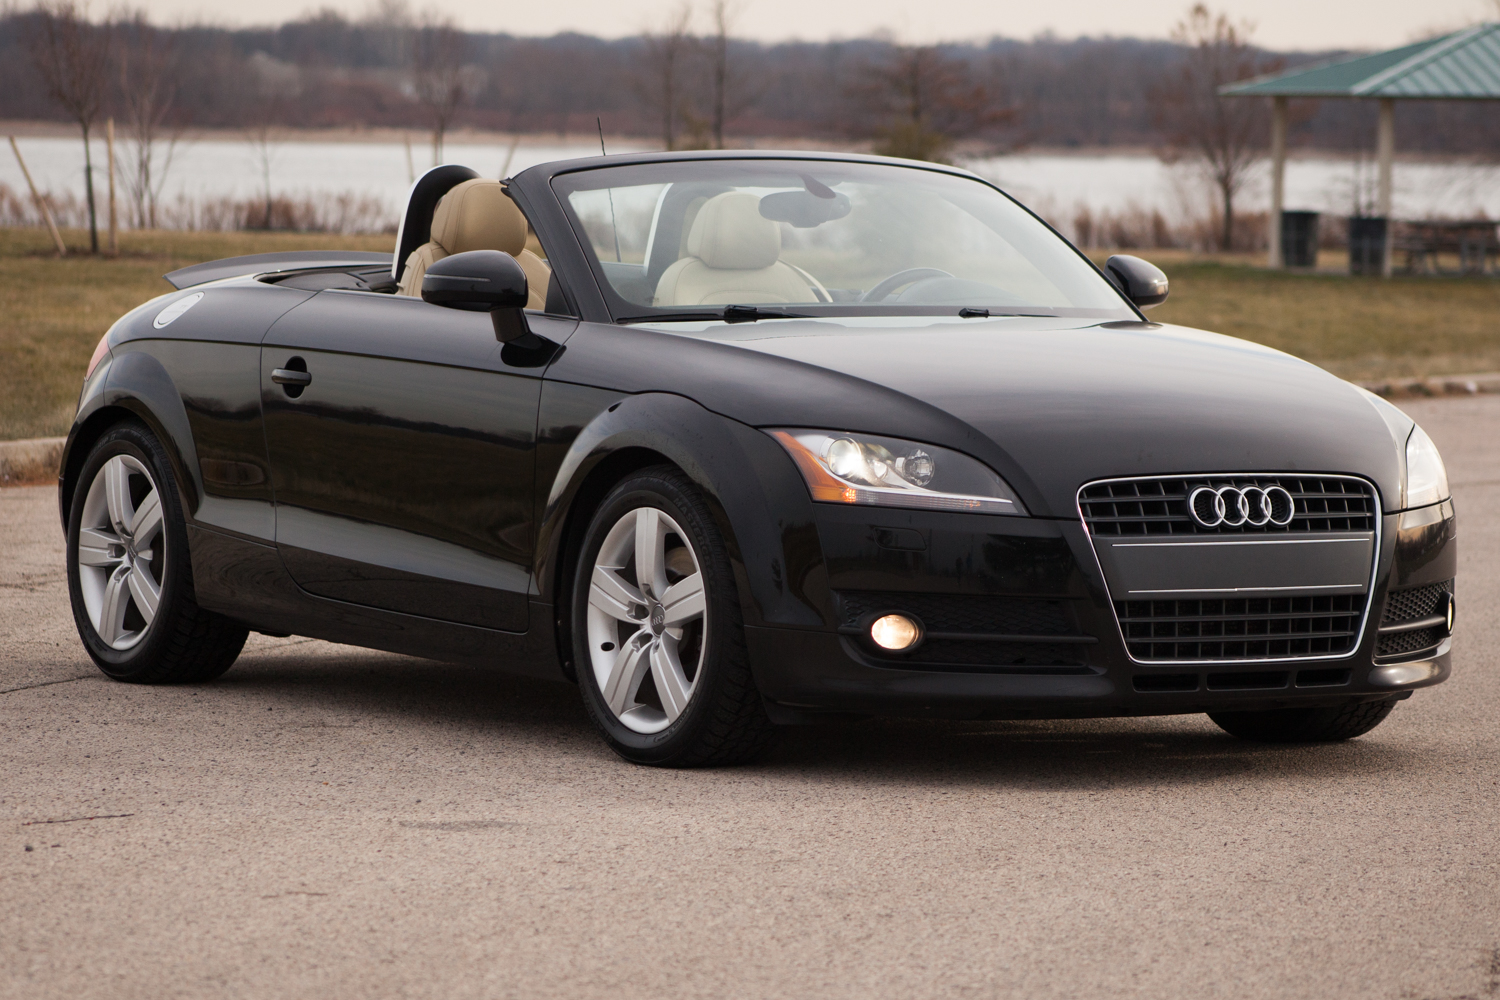 2008 audi tt convertible carfax certified heated seats. Black Bedroom Furniture Sets. Home Design Ideas